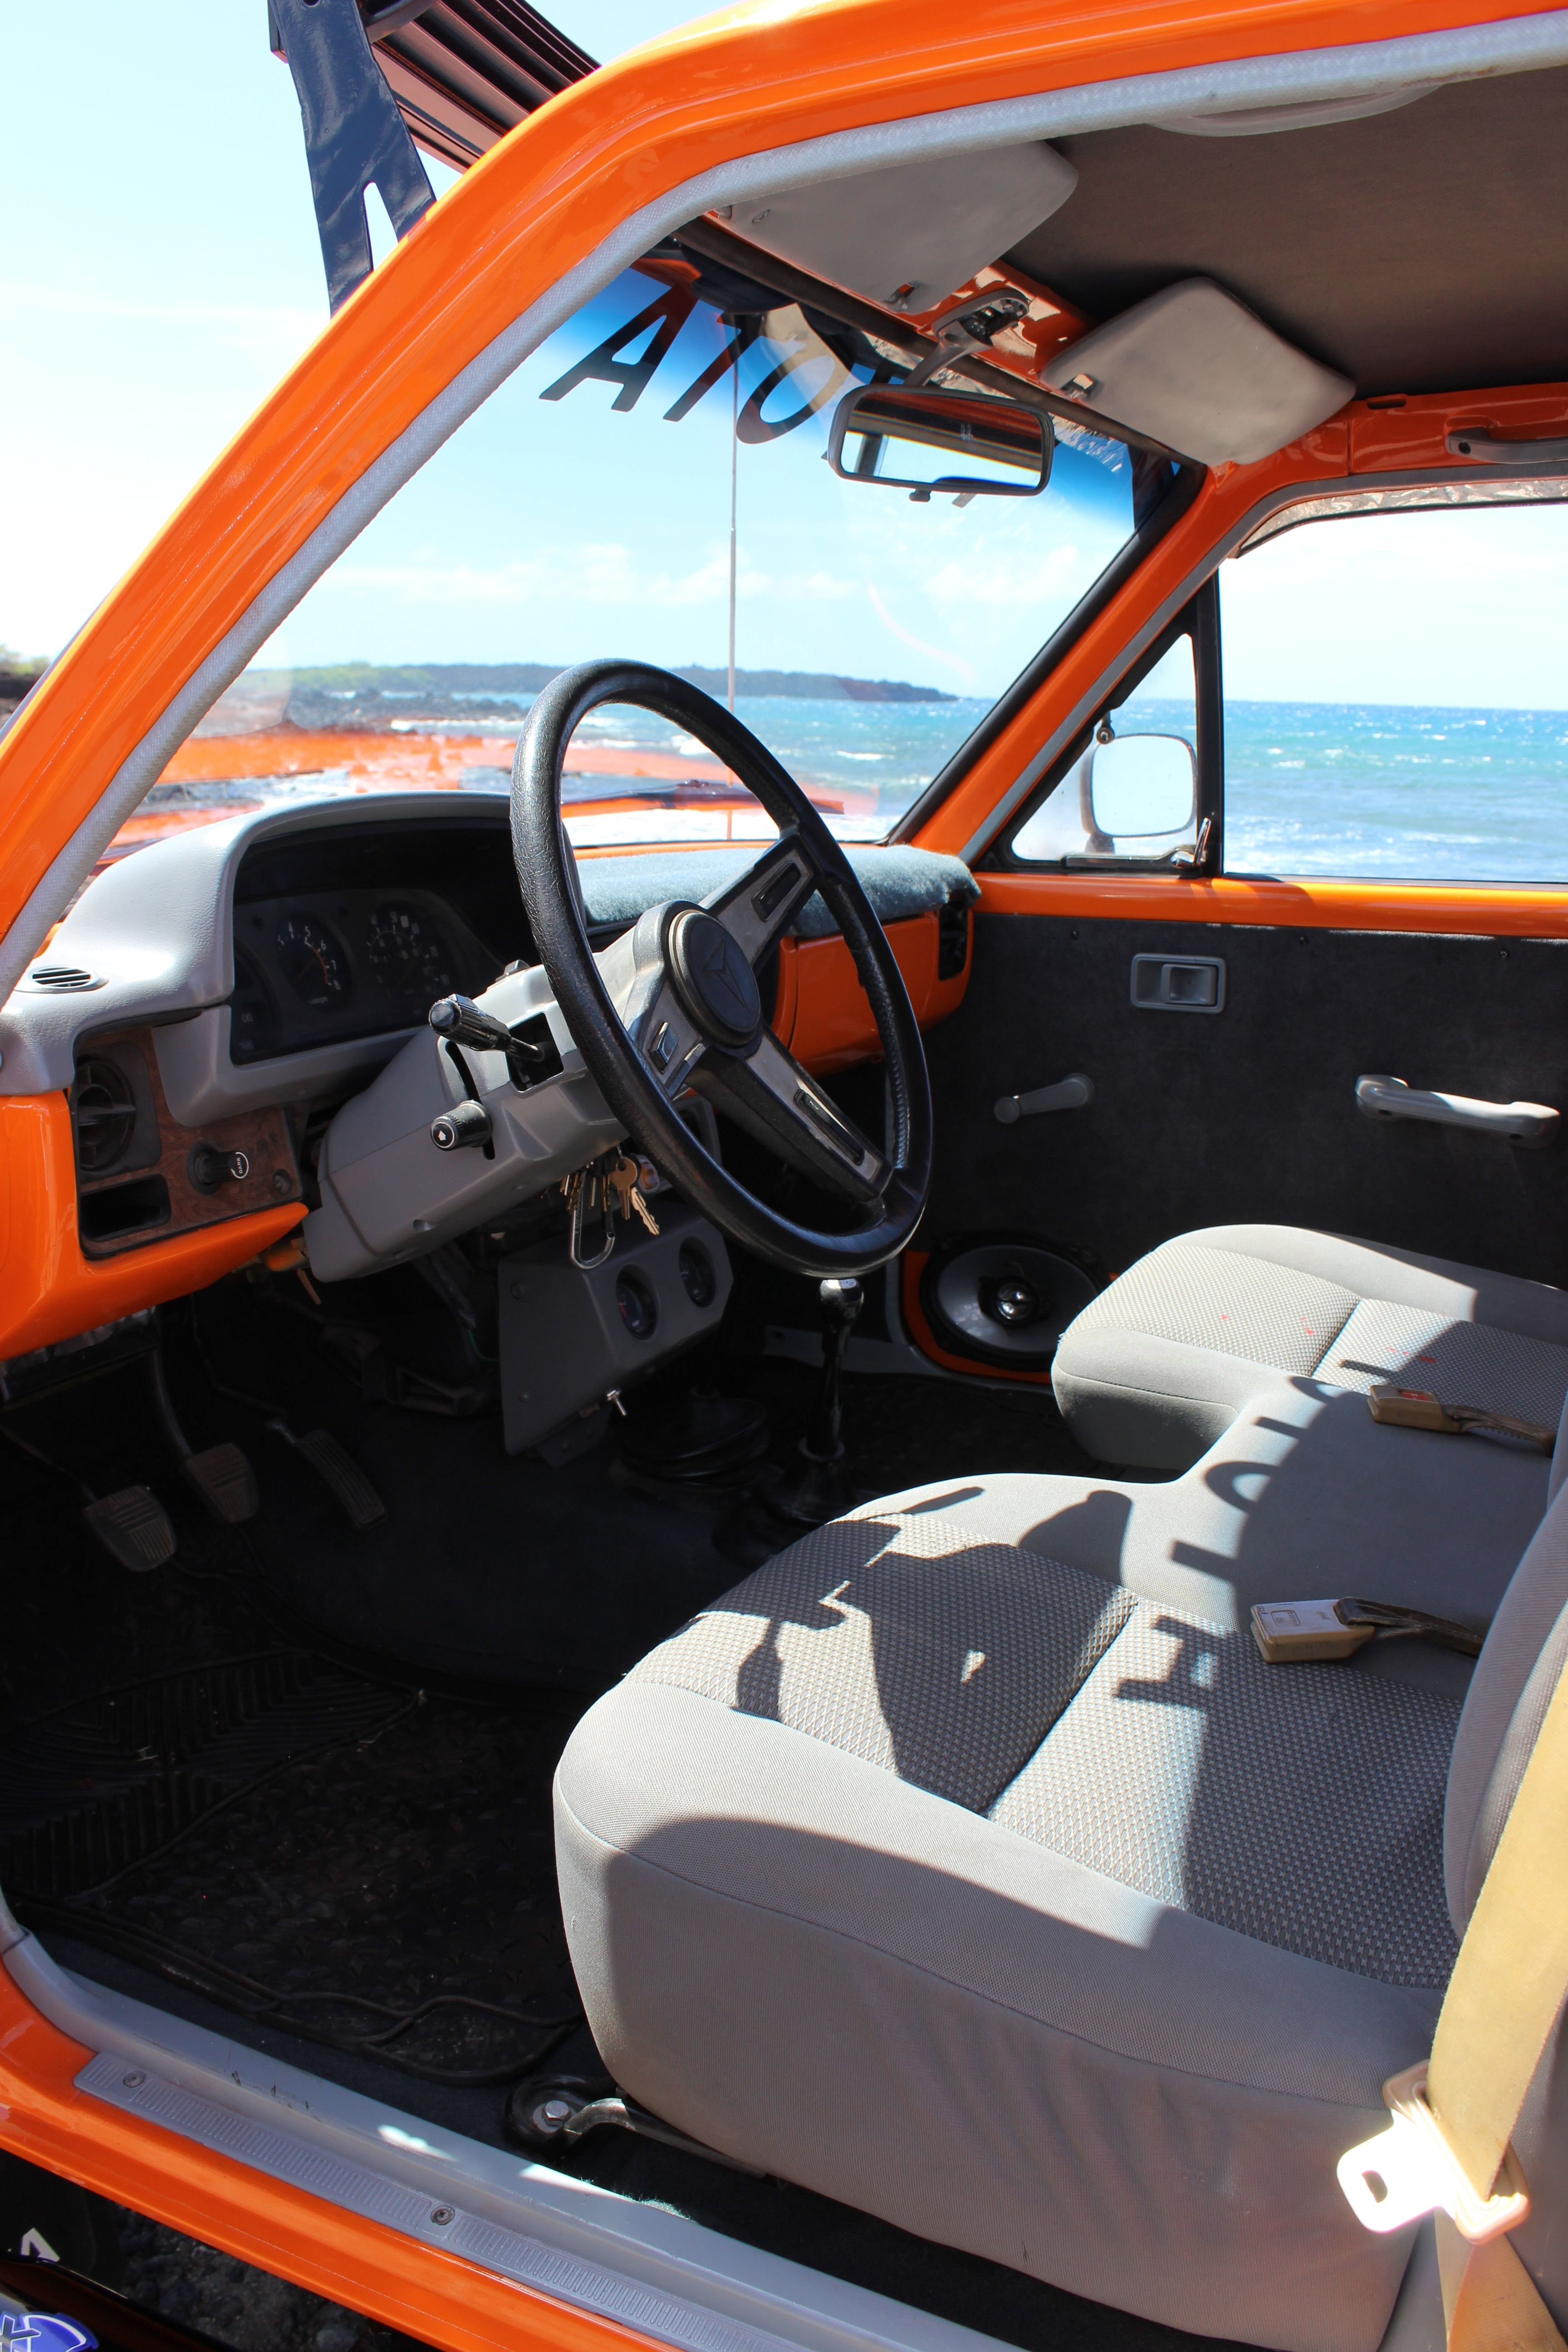 For Sale 1980 1st Generation Toyota Sr5 Fully Custom Interior With 2014 Tacoma Bench Seat New Carpet Head Liner Toyota Trucks For Sale Toyota 4x4 Toyota